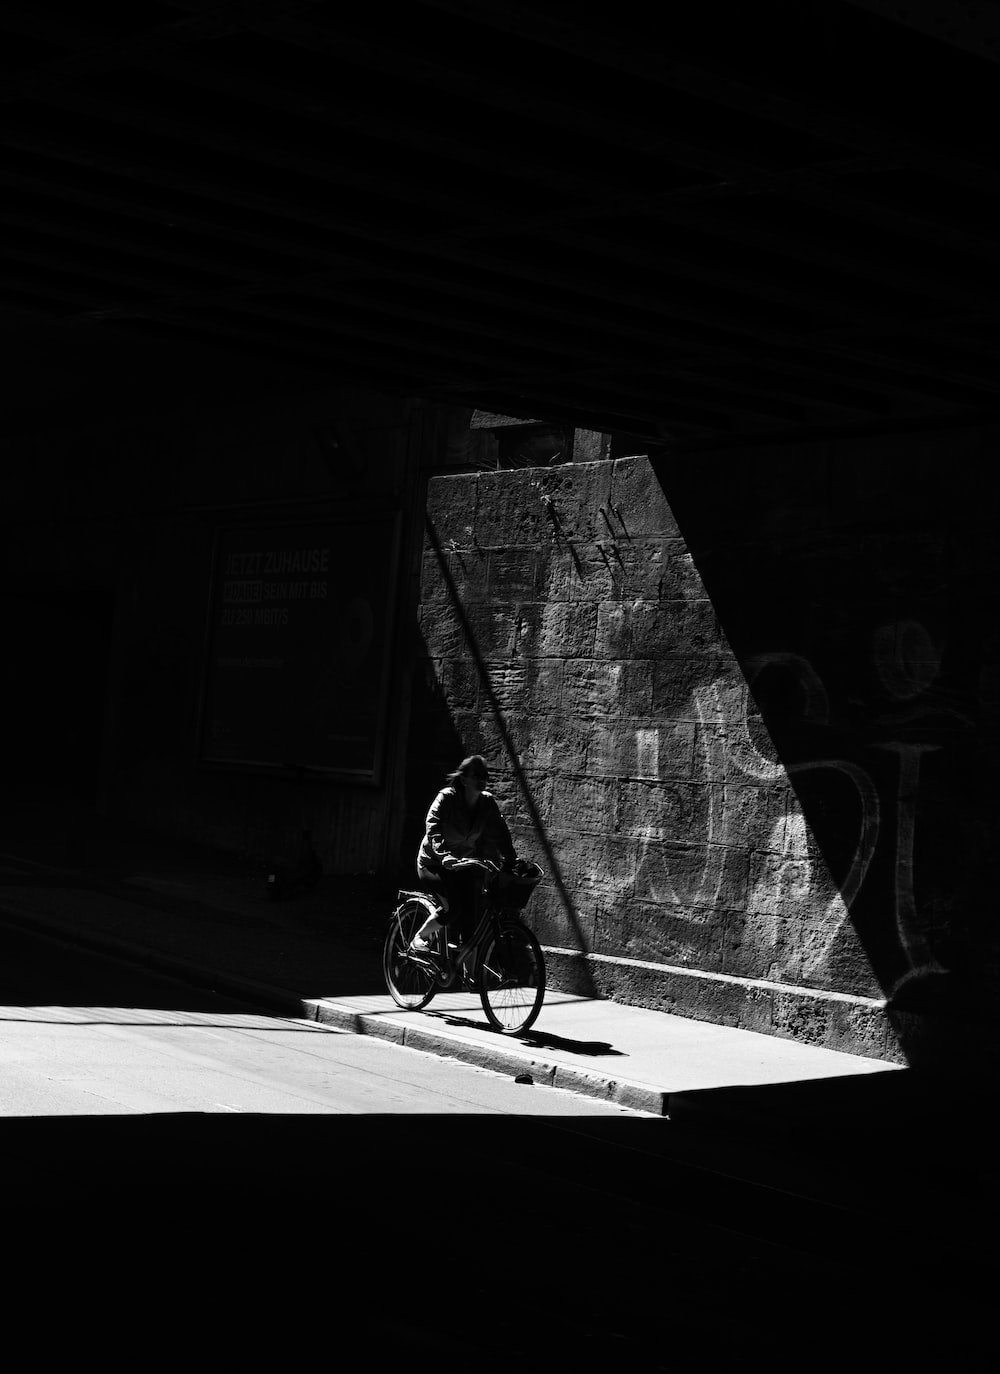 grayscale photo of person riding bicycle